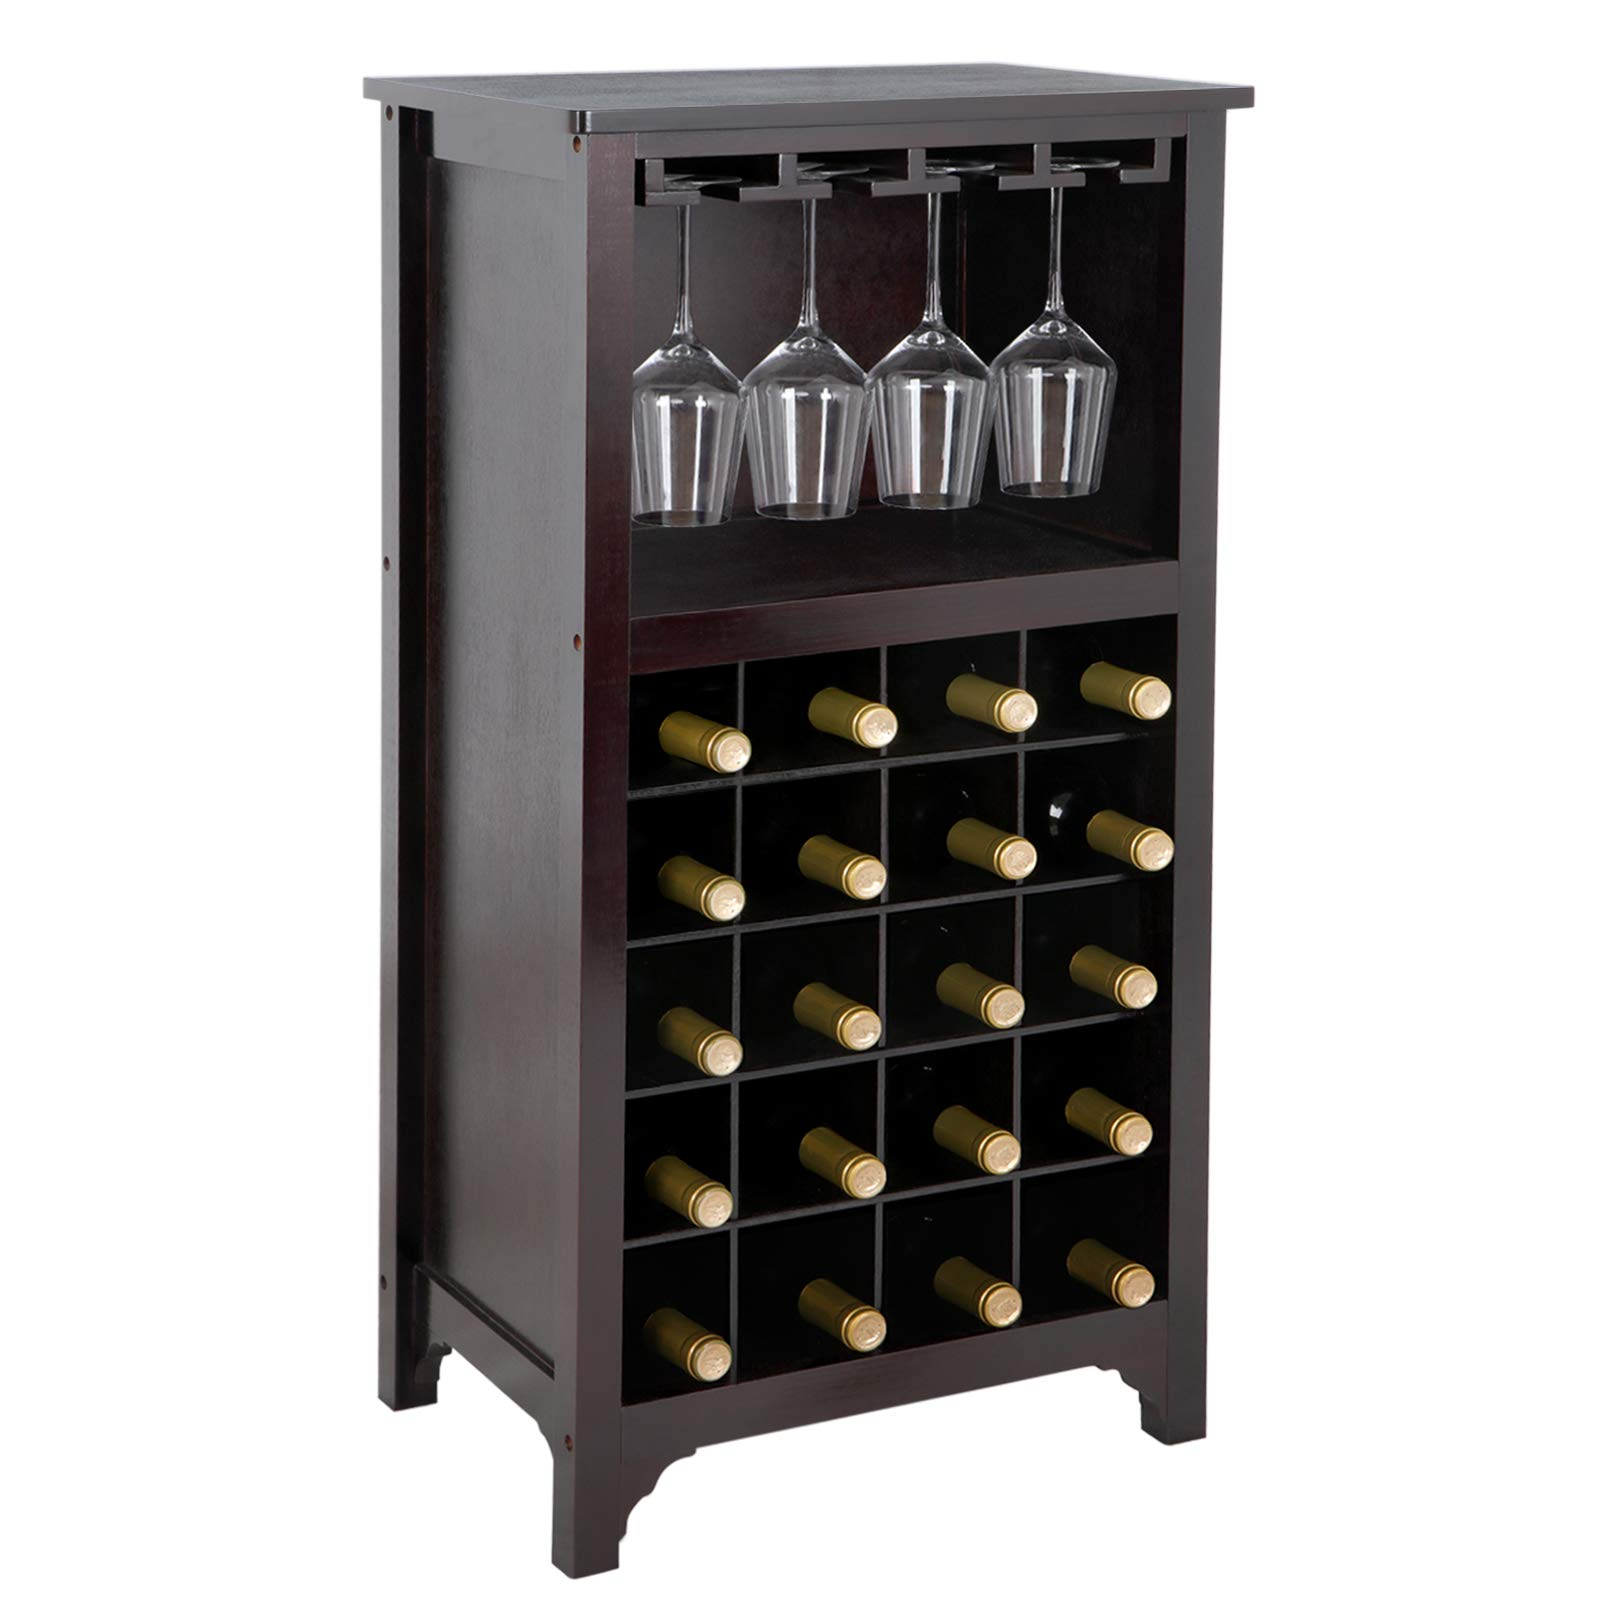 Smartxchoices 20 Bottle Wood Wine Bar Cabinet with Glass Rack Modular Wine Bottle Holder Storage Rack Kitchen Home Bar Furniture Display,Espresso